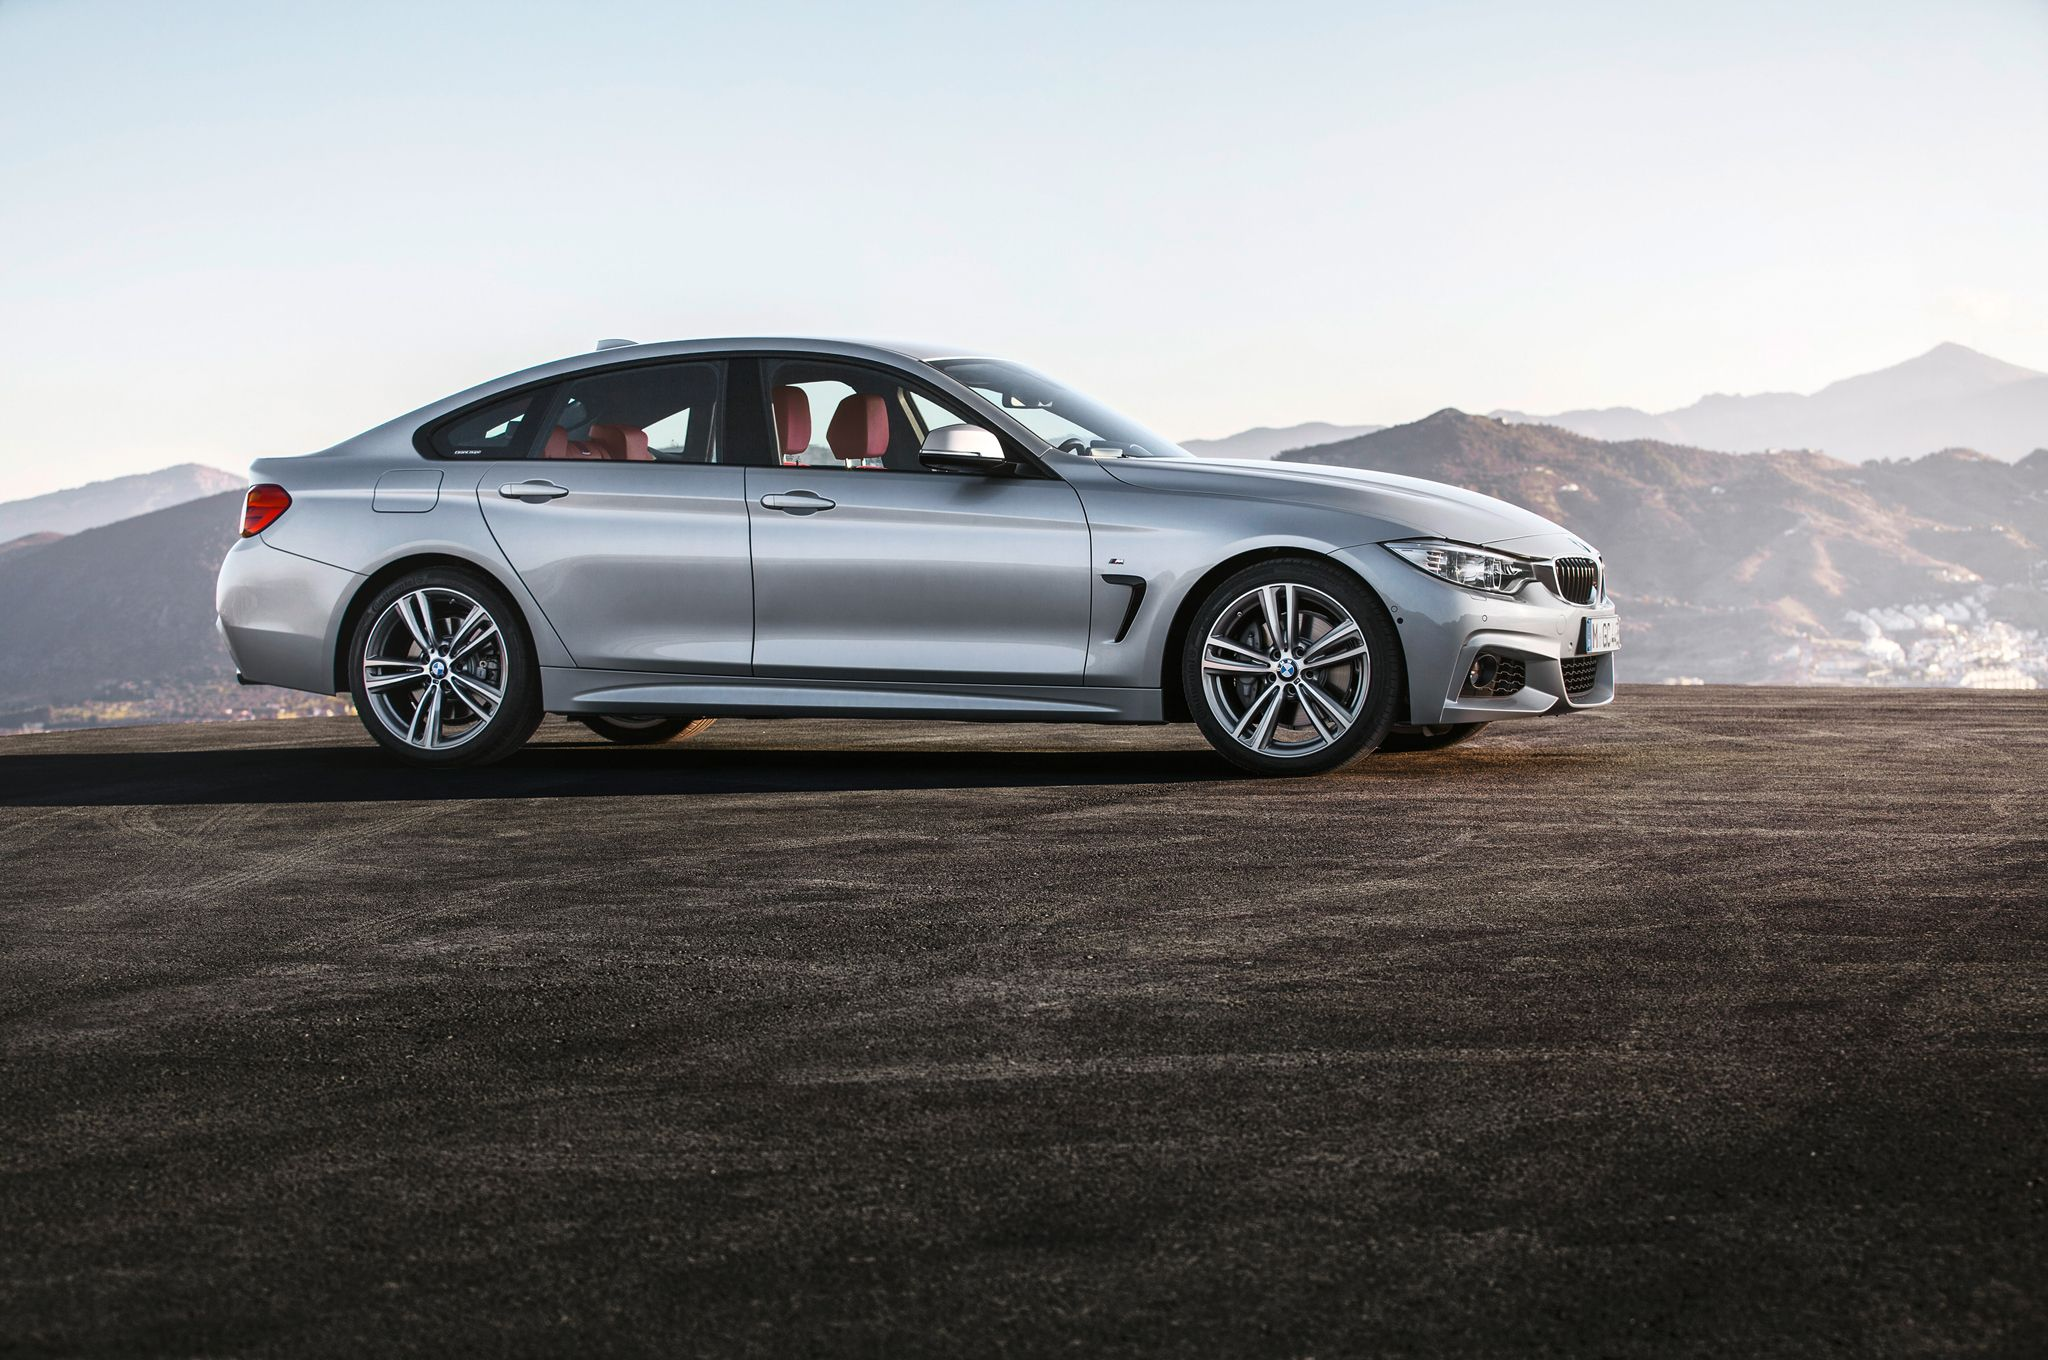 Com the 2015 bmw 4 series gran coupe arrives in the us in early summer of 2014 with two engine choices the gran coupe will feature bmw s award winning